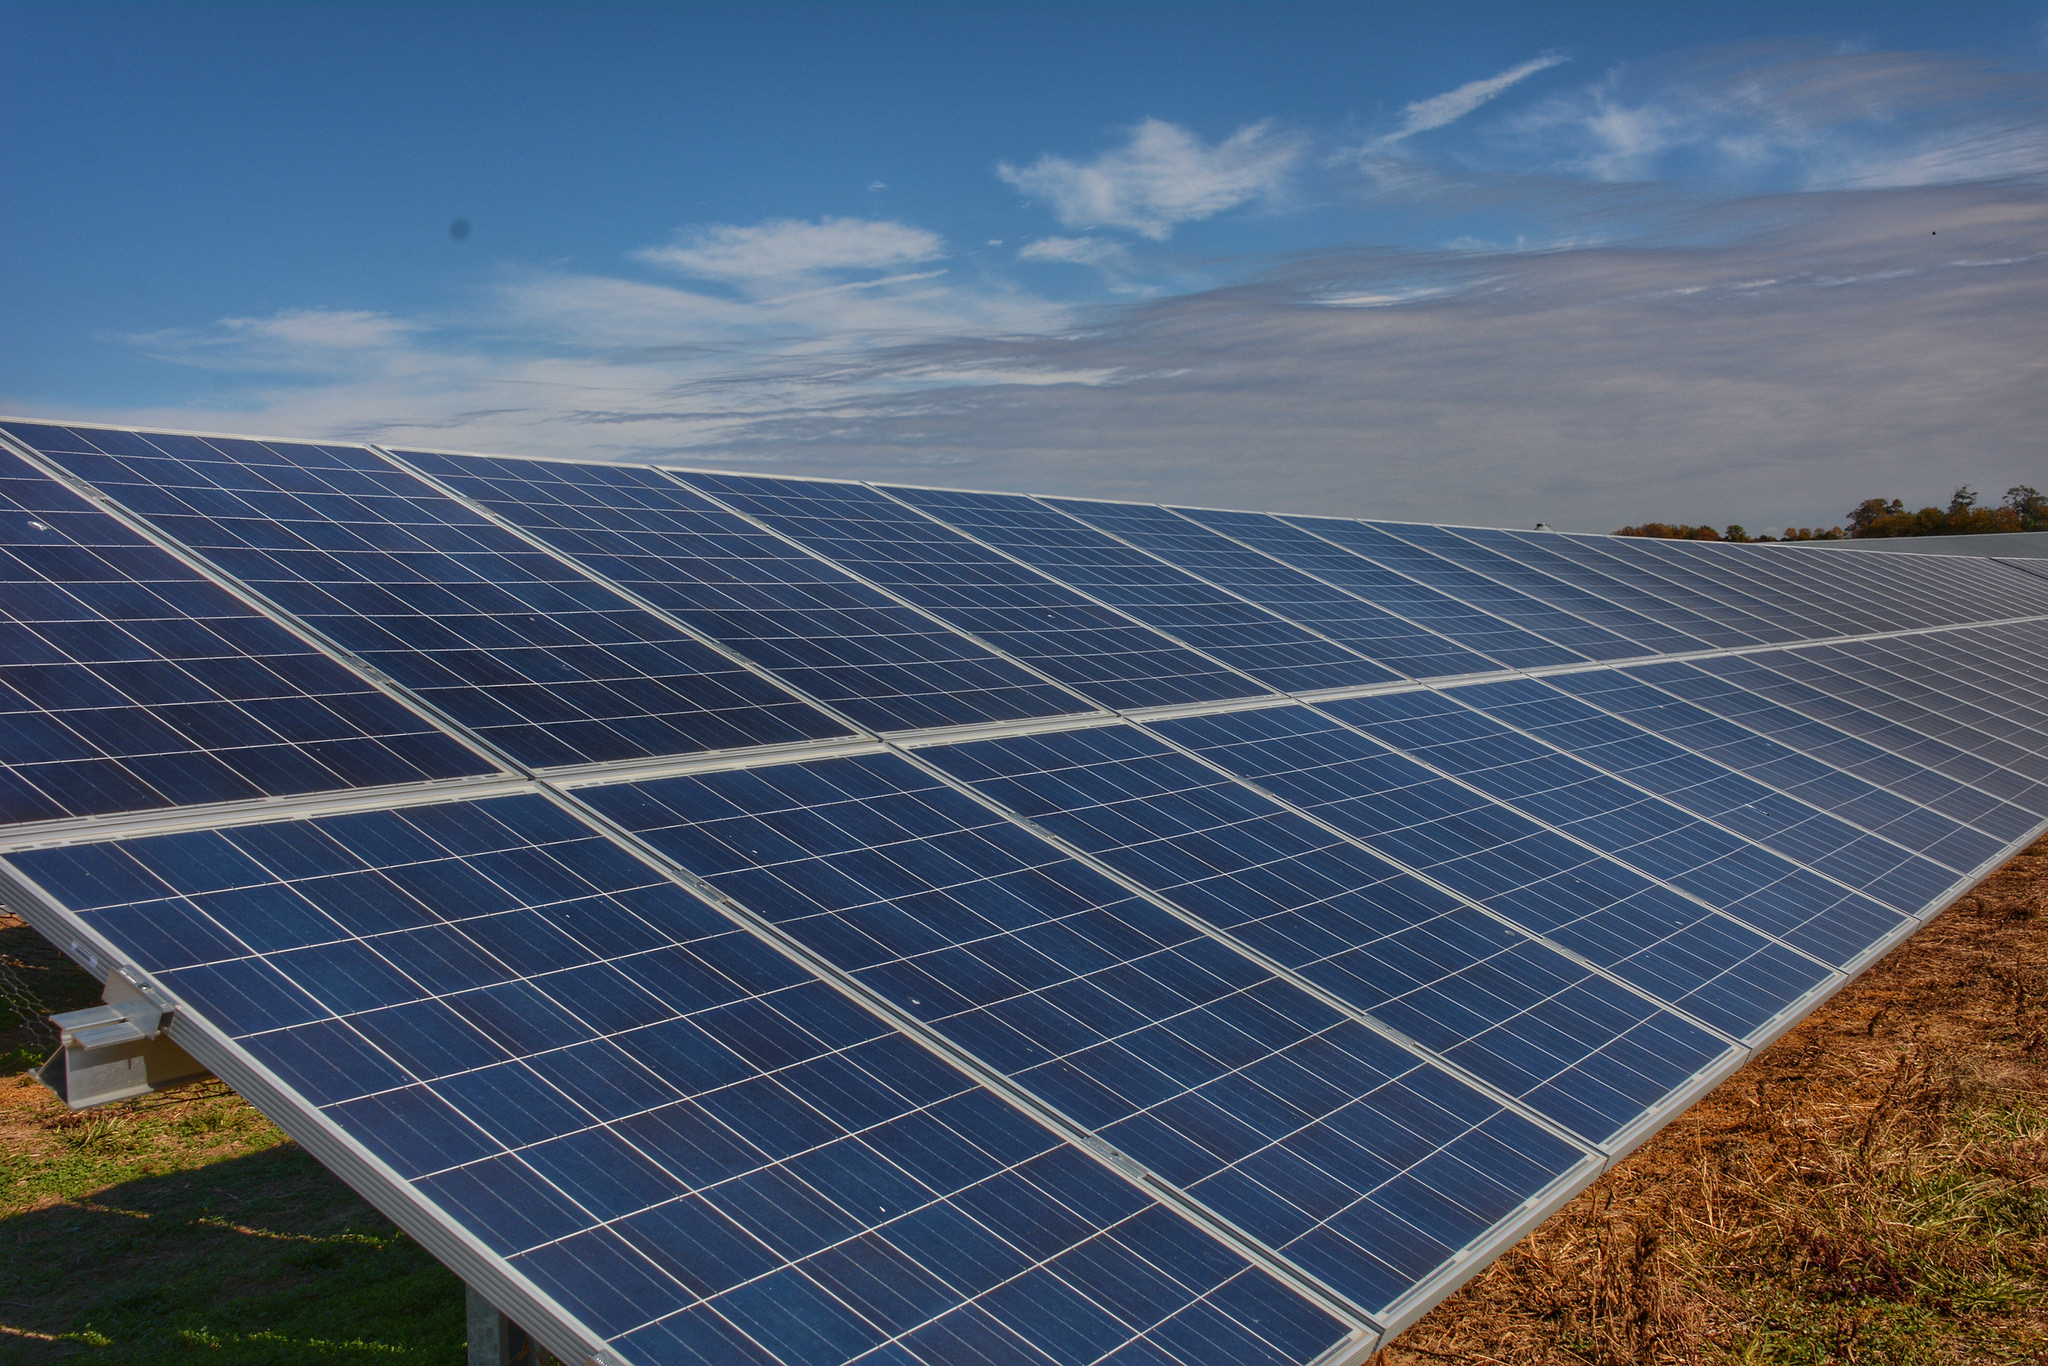 The hybrid solar/wind system will cover approximately half of the overall energy demands at the base. Image: Delaware Cooperative Extension / Flickr